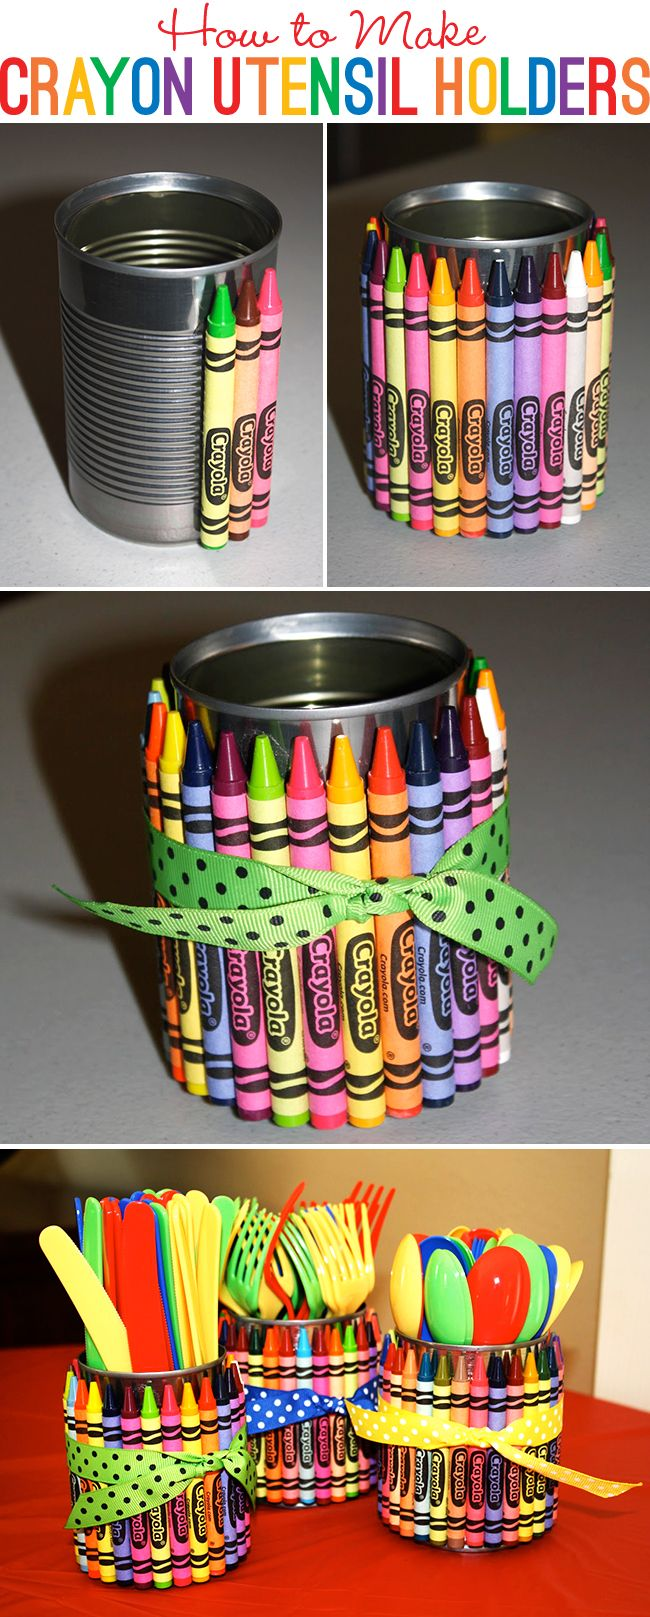 Teachers, parents, and kids alike enjoy the vivid colors of crayons. Be a resourceful decorator by shopping for $1 packs of crayons at Dollar Tree to pair with recycled tin cans!